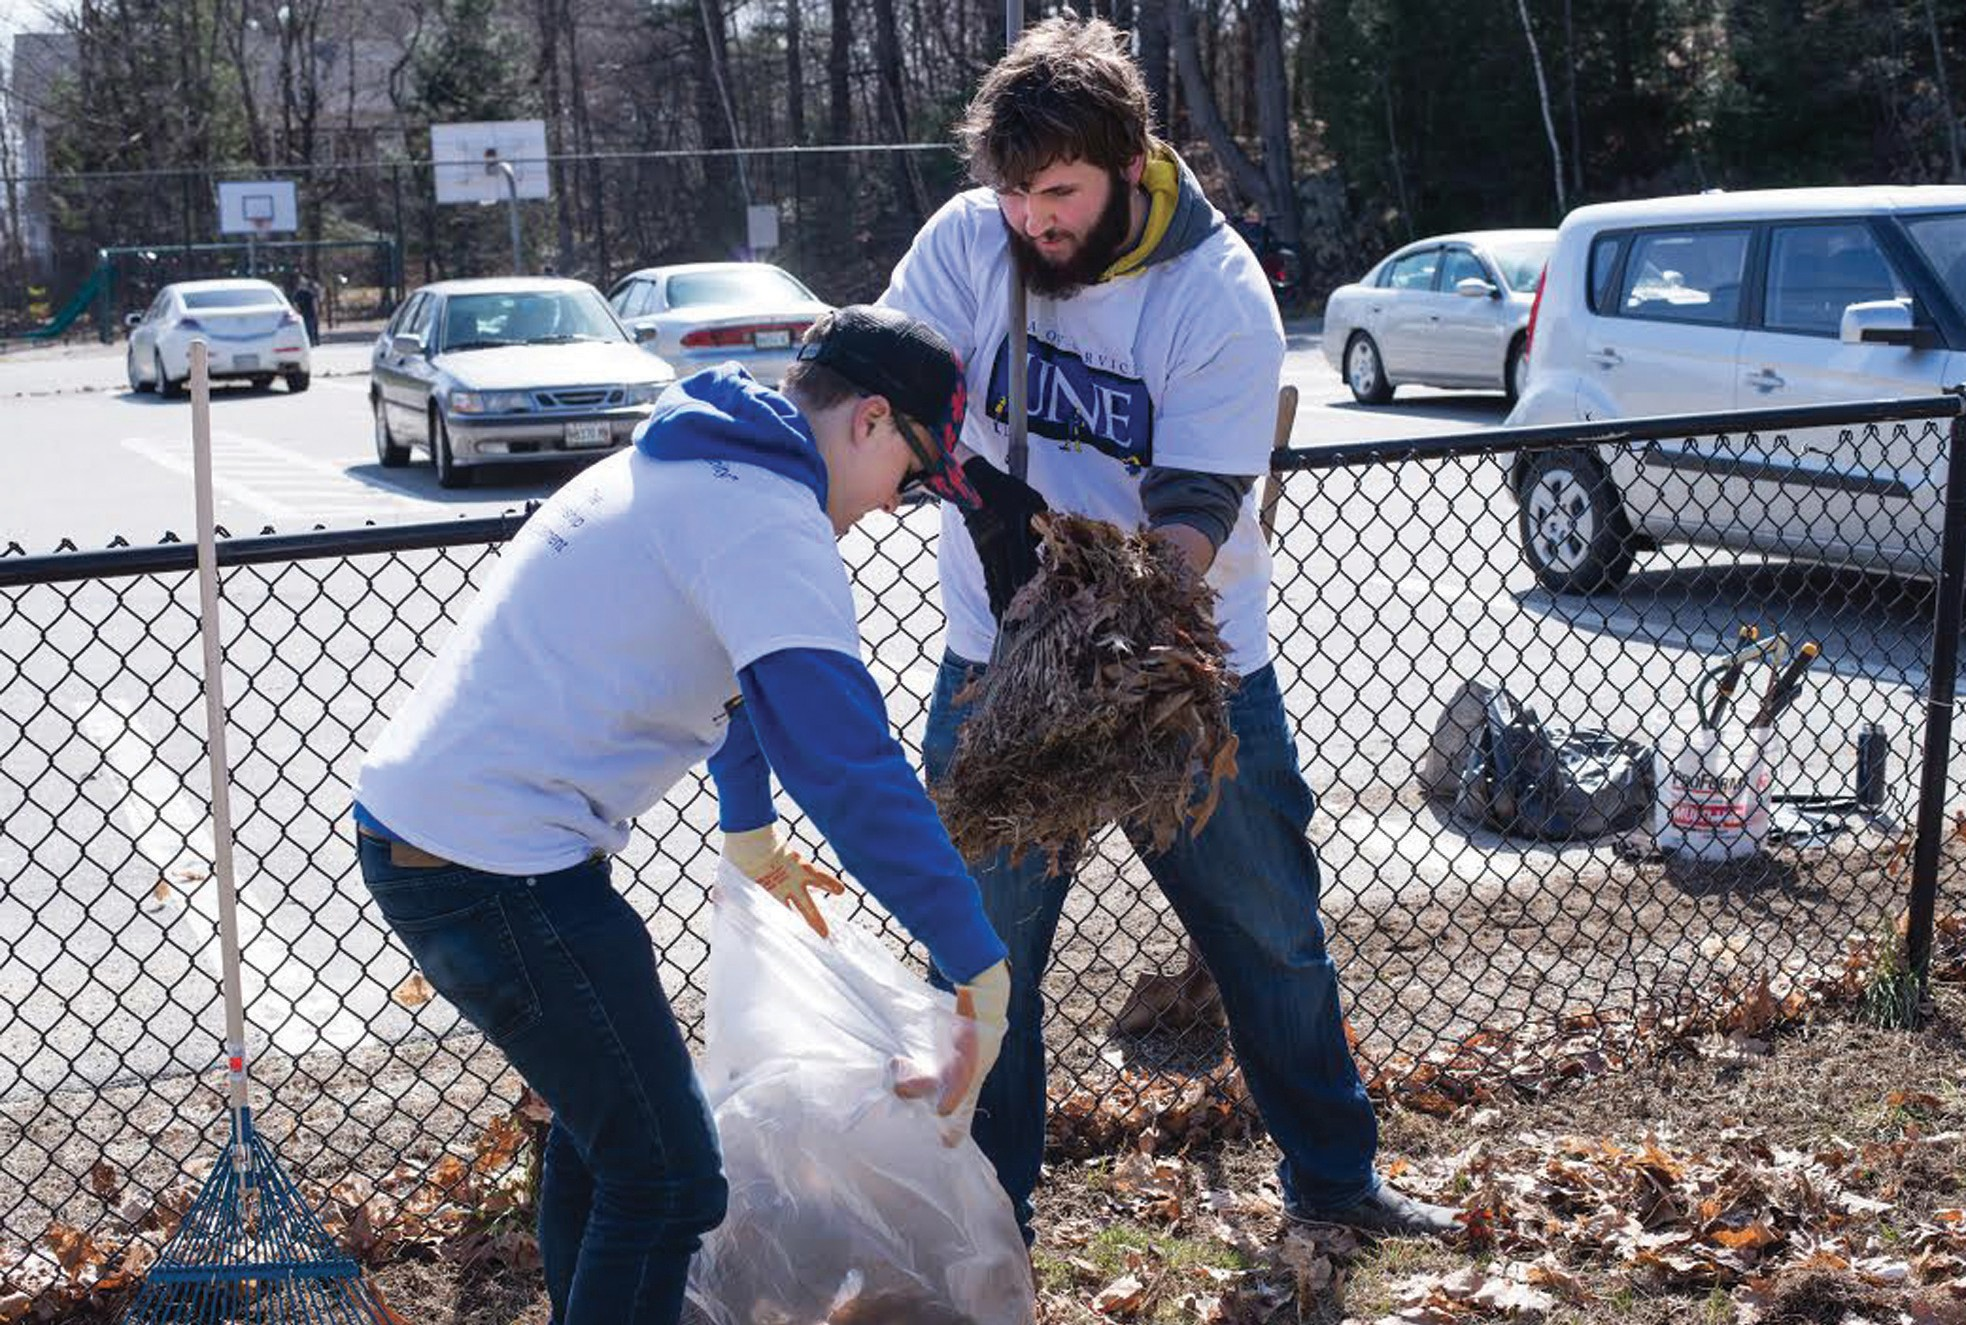 University of New England students clean up trash at Clifford Park in Biddeford on Saturday as part of the University of New England's first Day of Service.